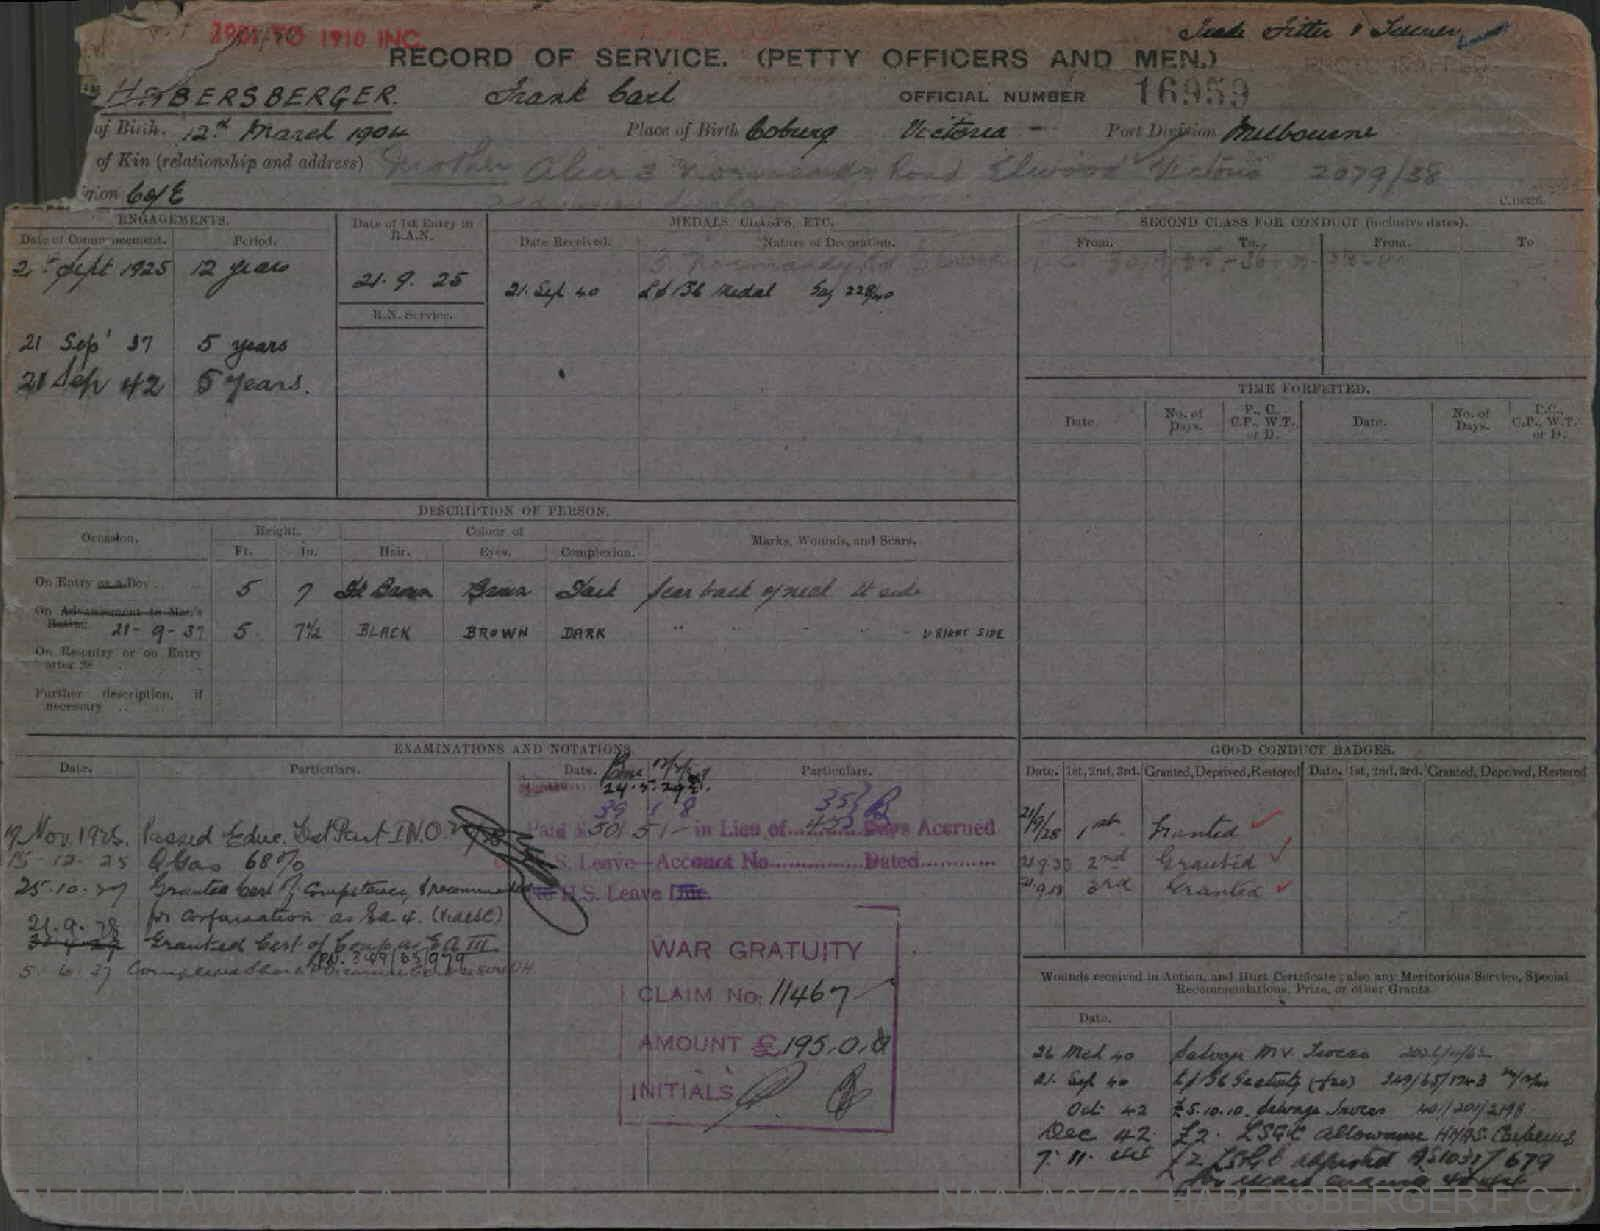 HABERSBERGER FRANK CARL : Service Number - 16959 : Date of birth - 12 Mar 1904 : Place of birth - COBURG VIC : Place of enlistment - MELBOURNE : Next of Kin - ALICE